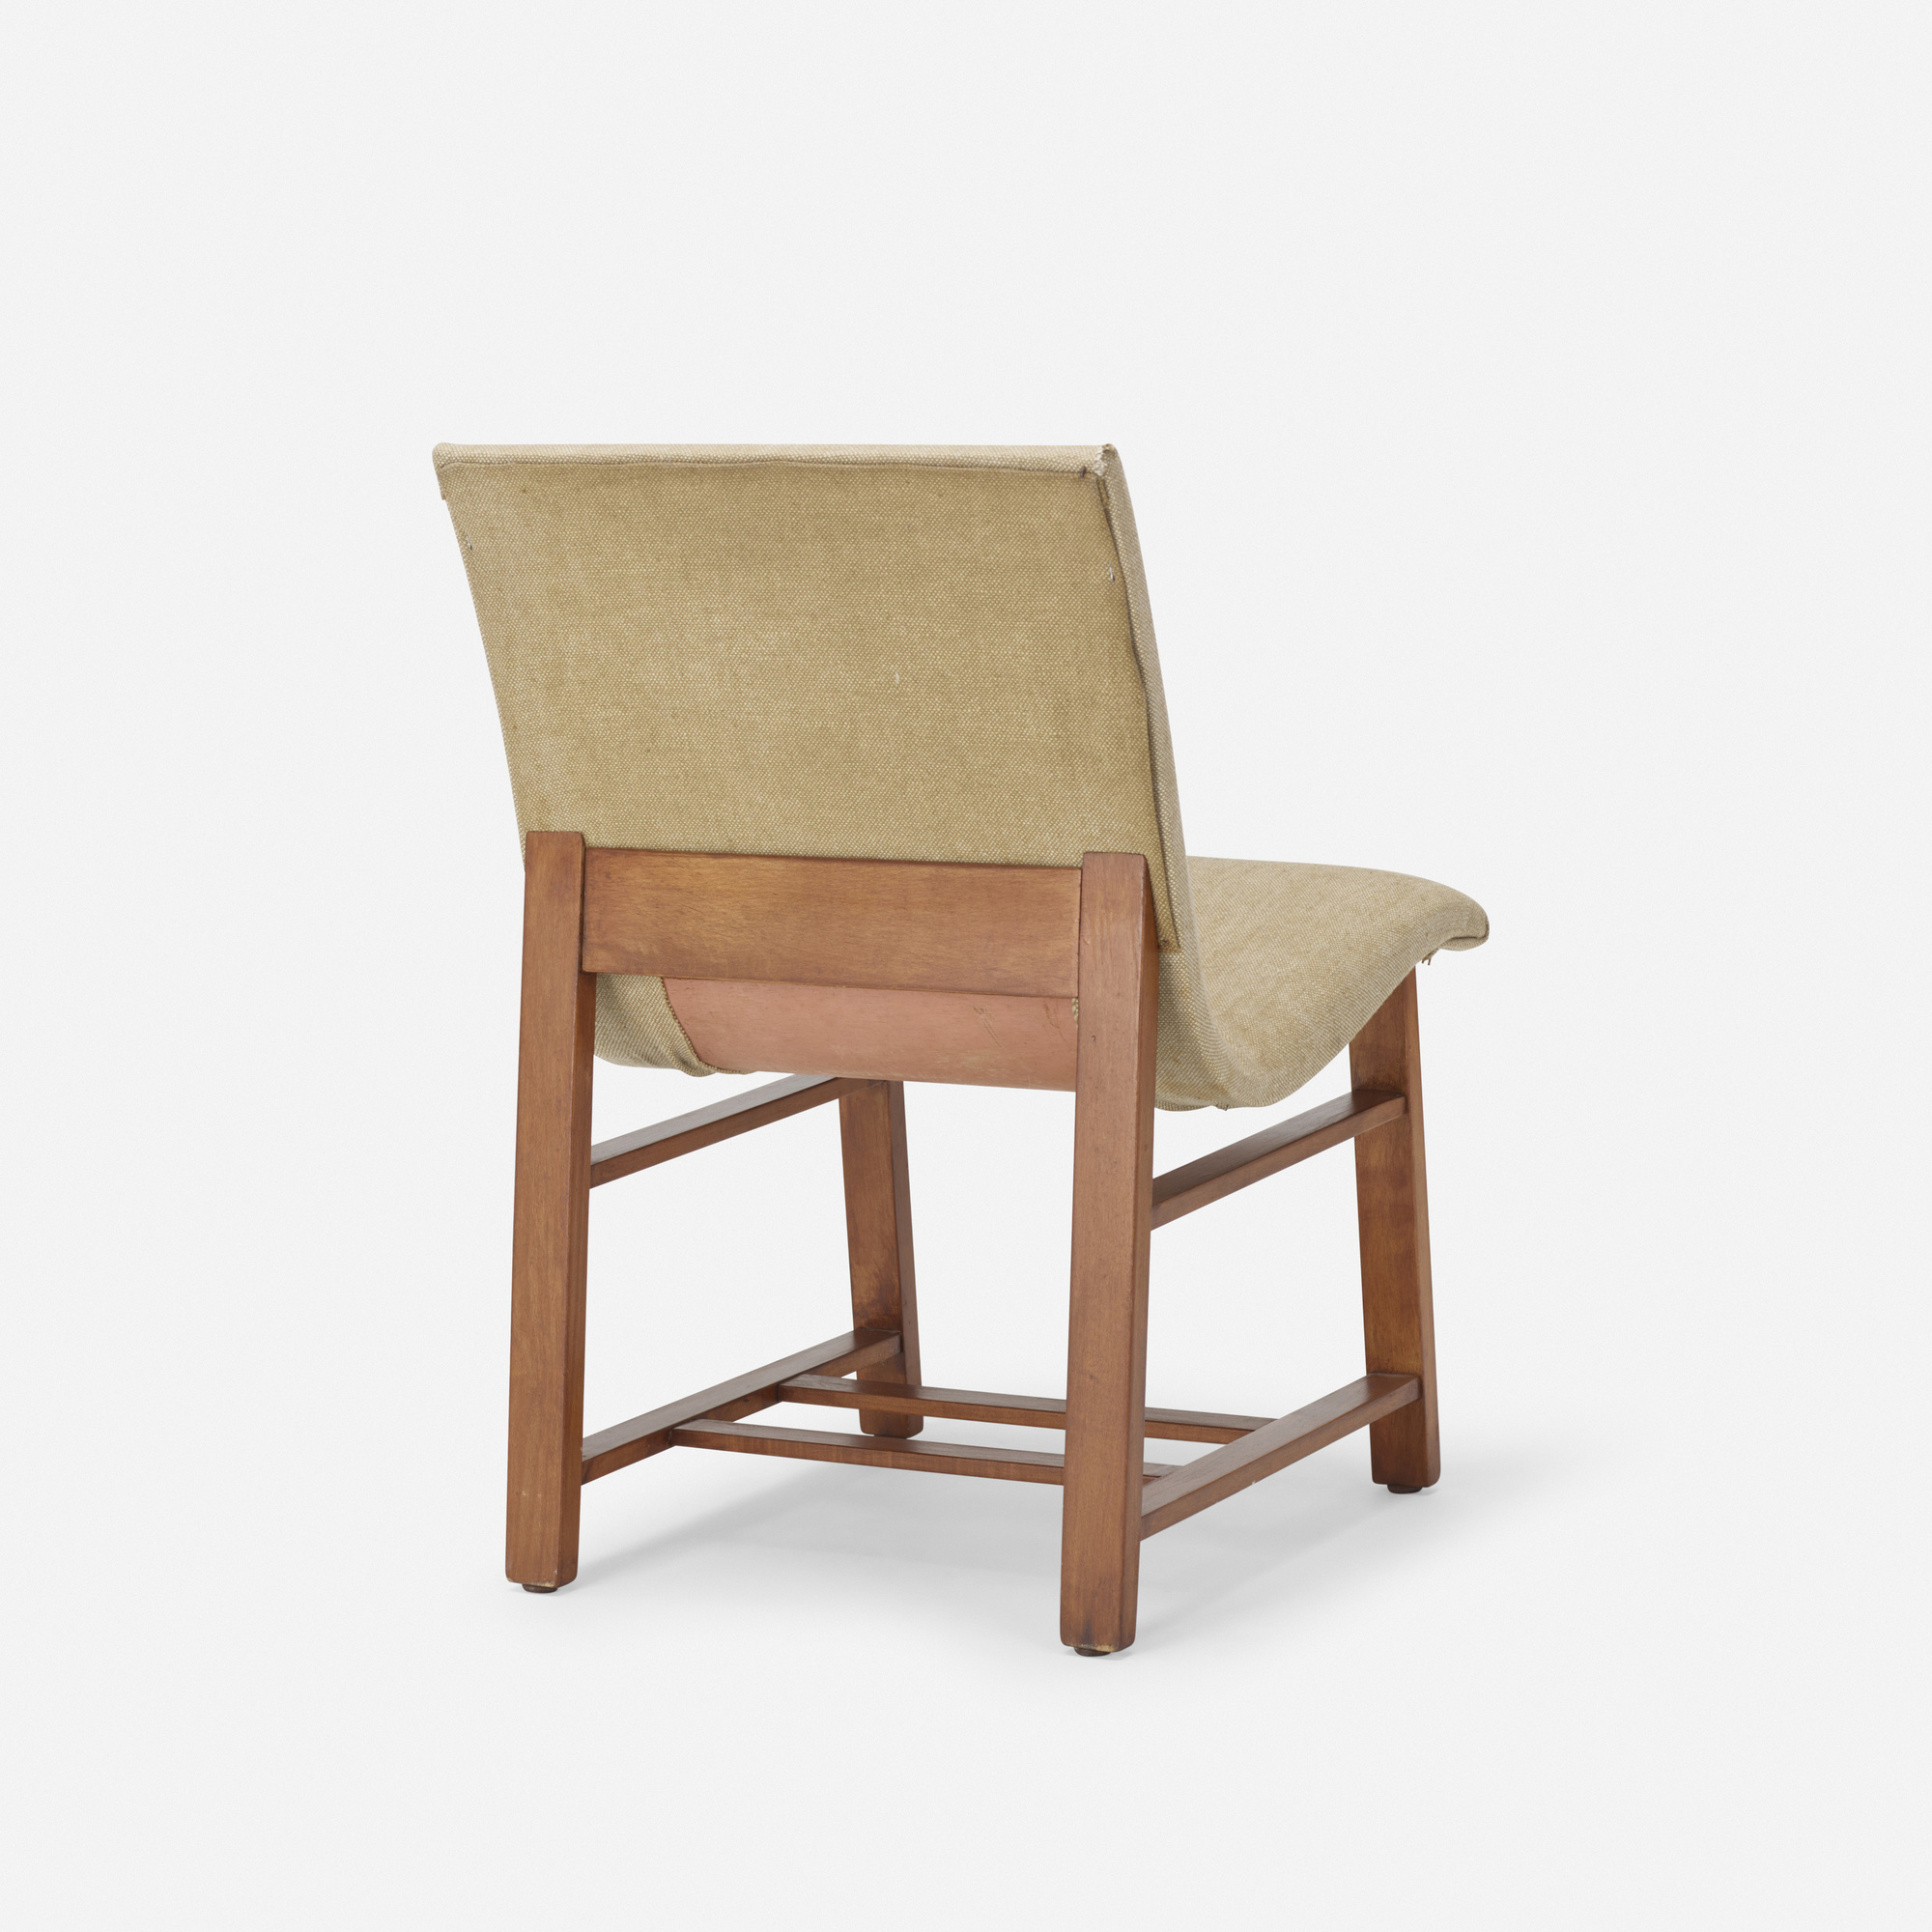 ... 291 Charles Eames and Eero Saarinen / chair from the Kleinhans Music Hall Buffalo & 291: CHARLES EAMES AND EERO SAARINEN chair from the Kleinhans Music ...